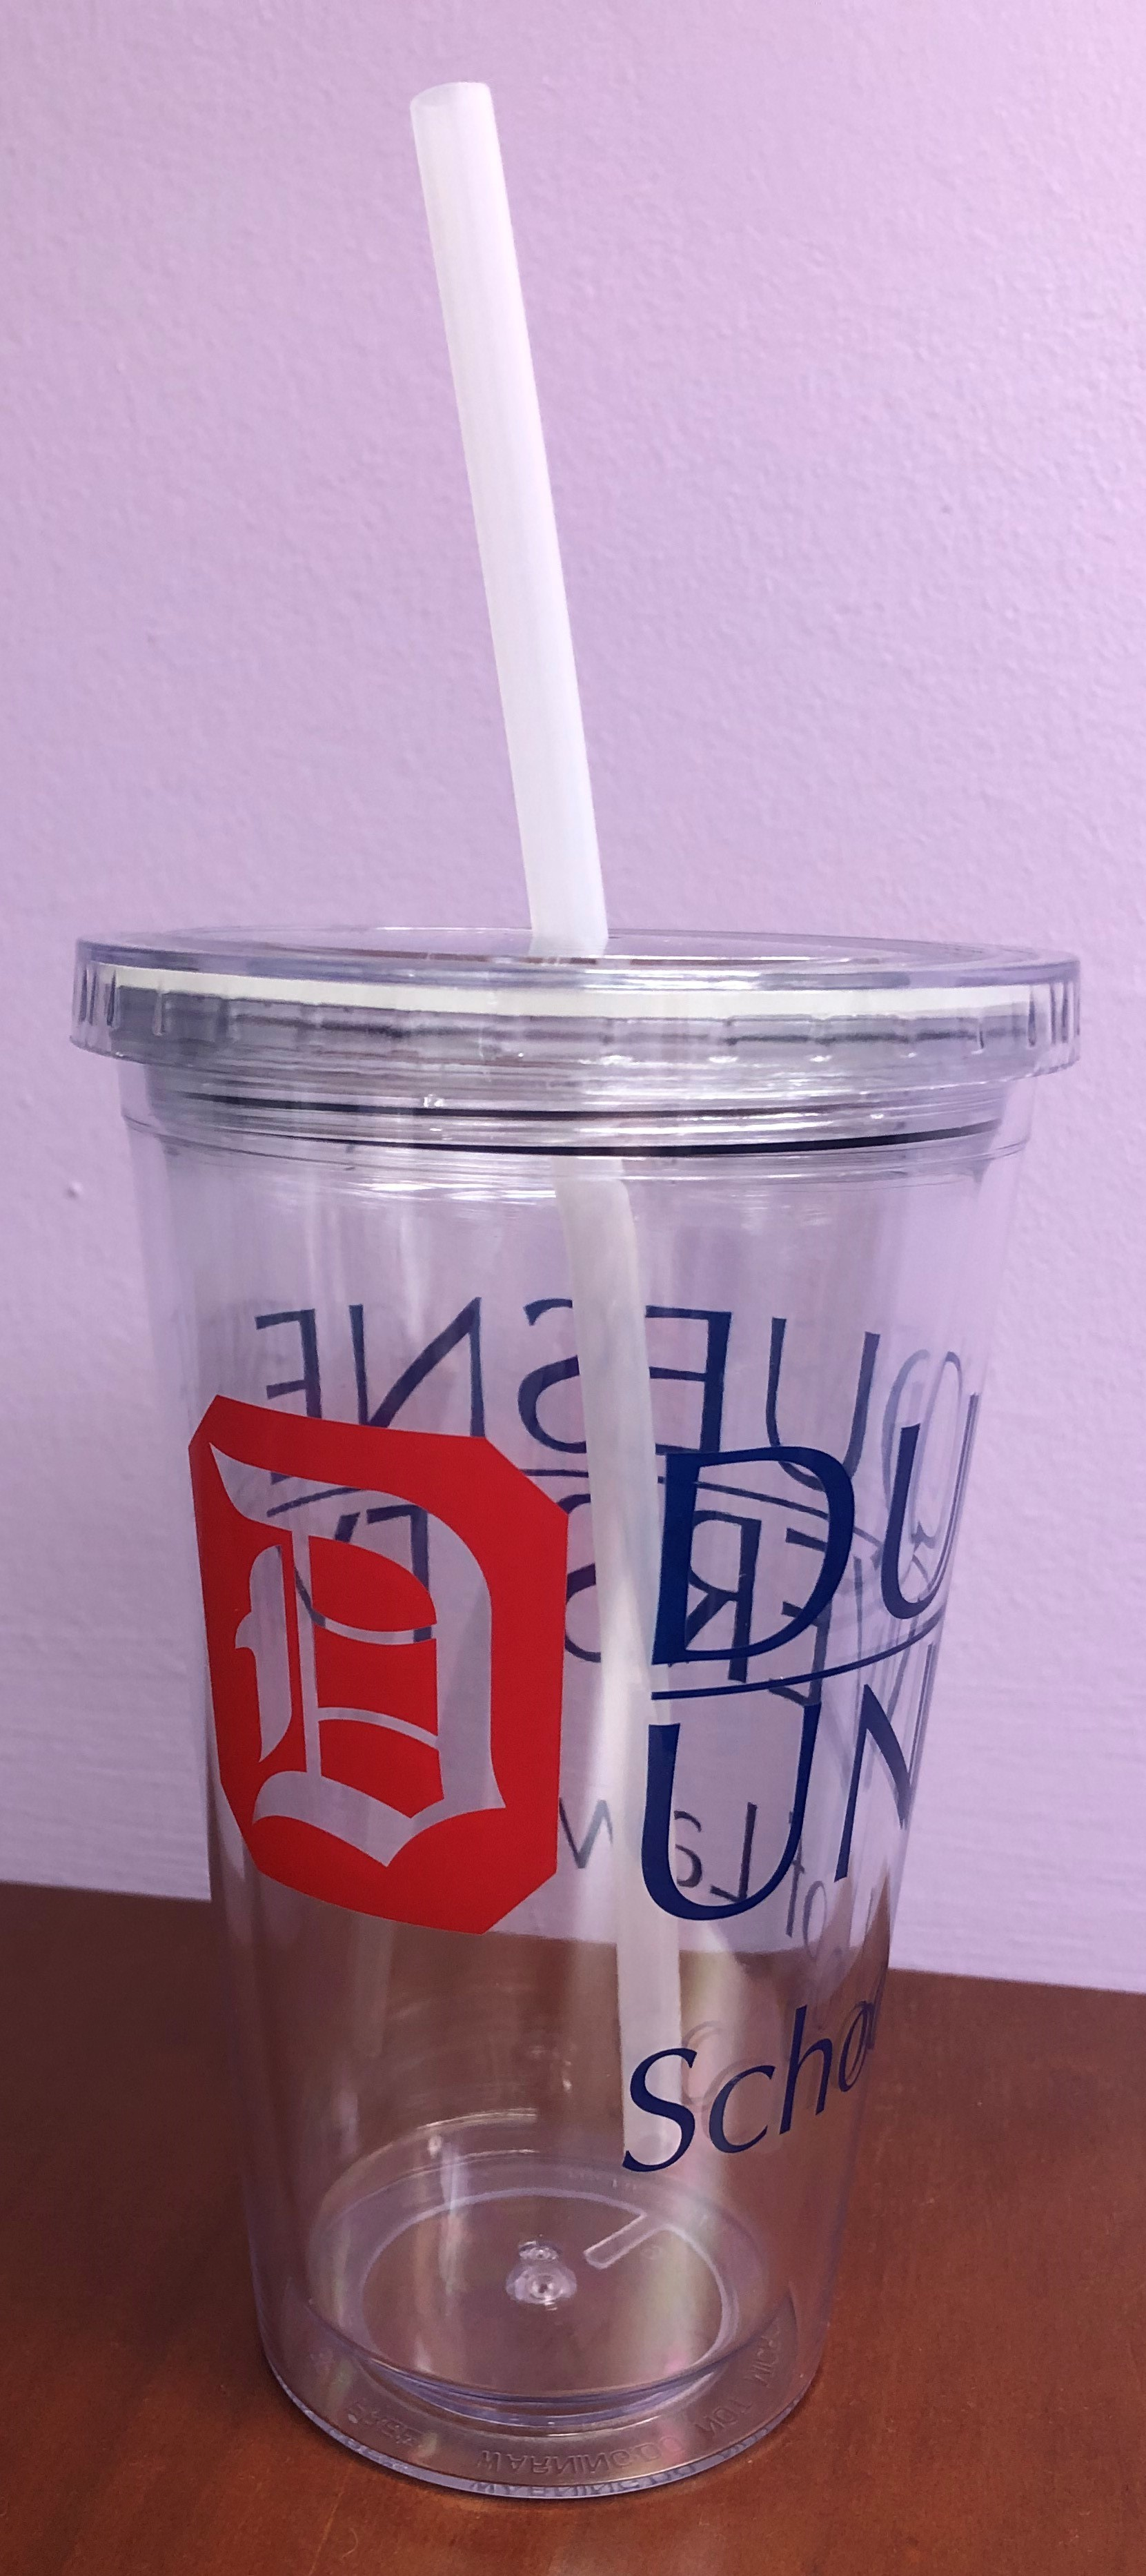 photo of the straw cup